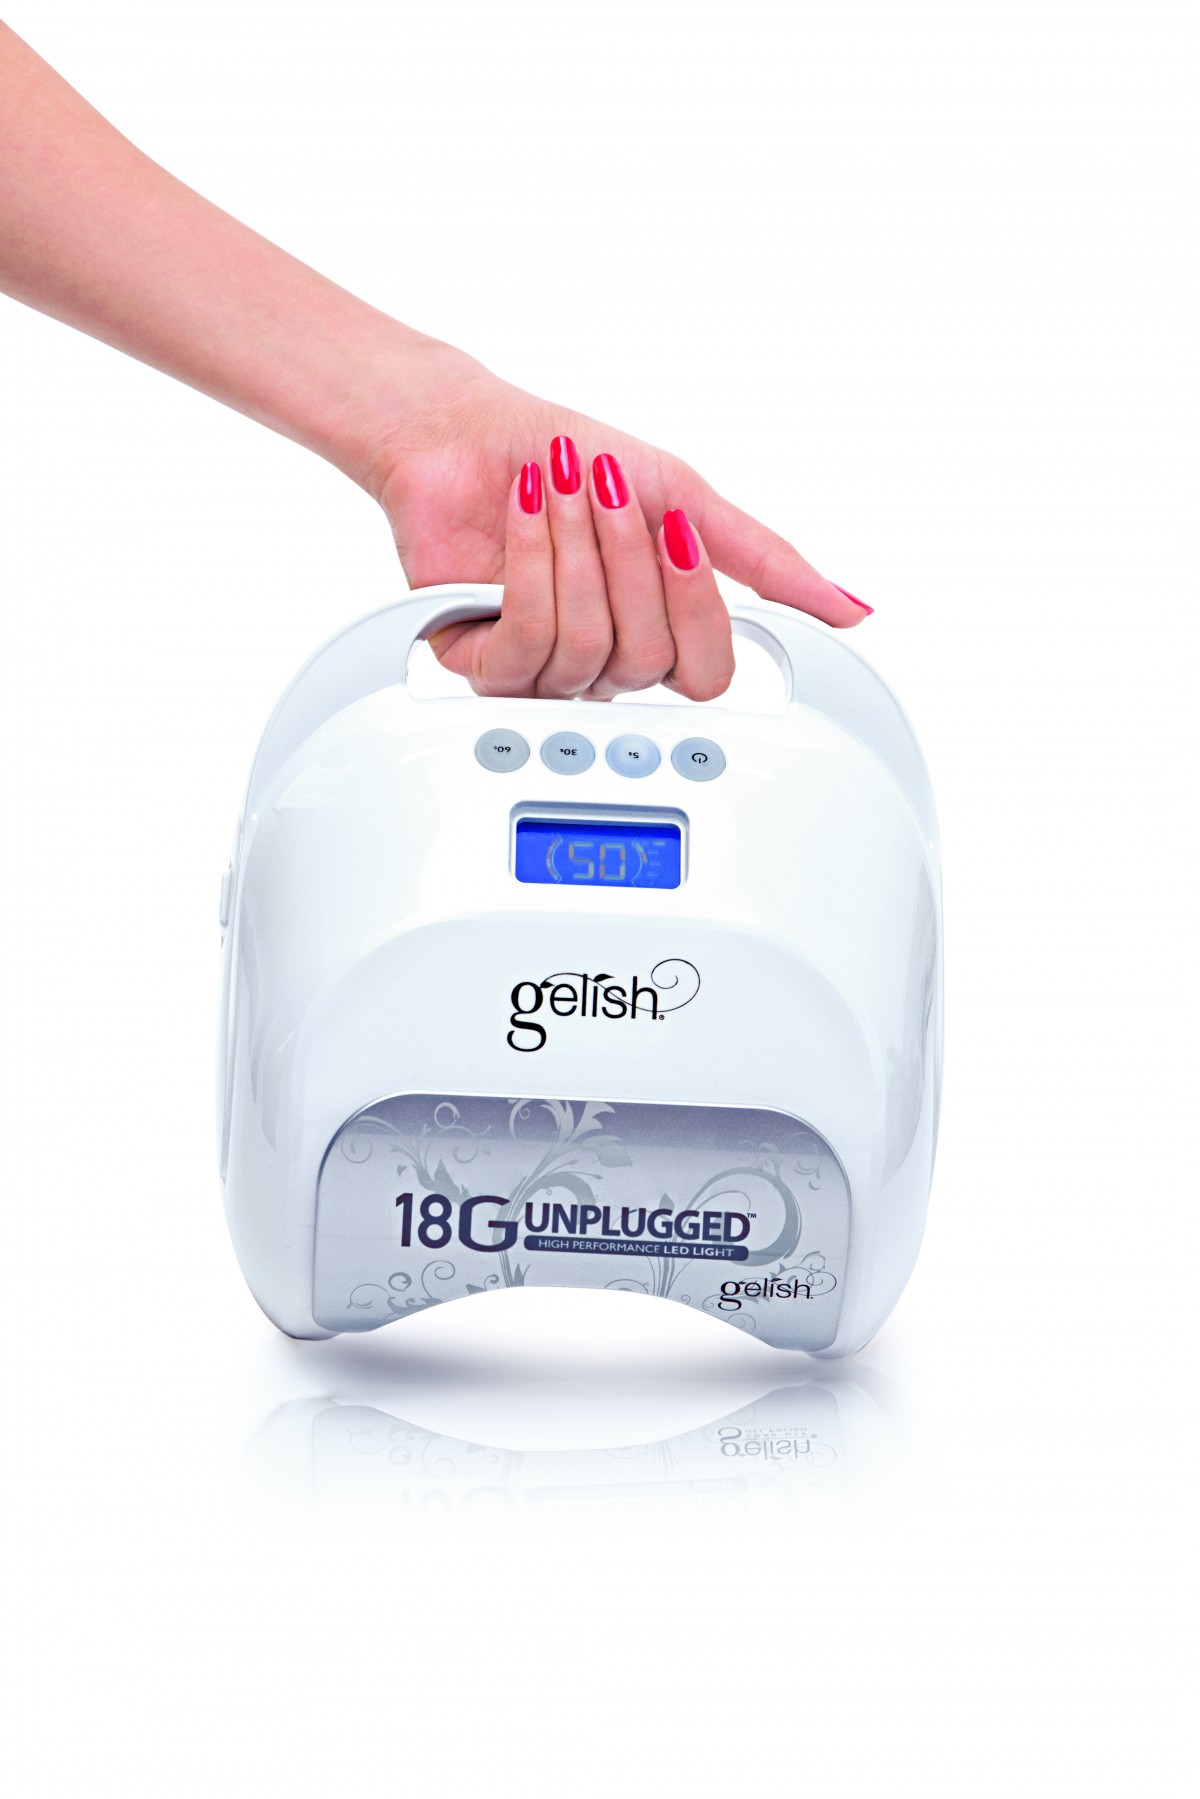 Gelish 18g Unplugged Led Lamp With Comfort Cure Gelish